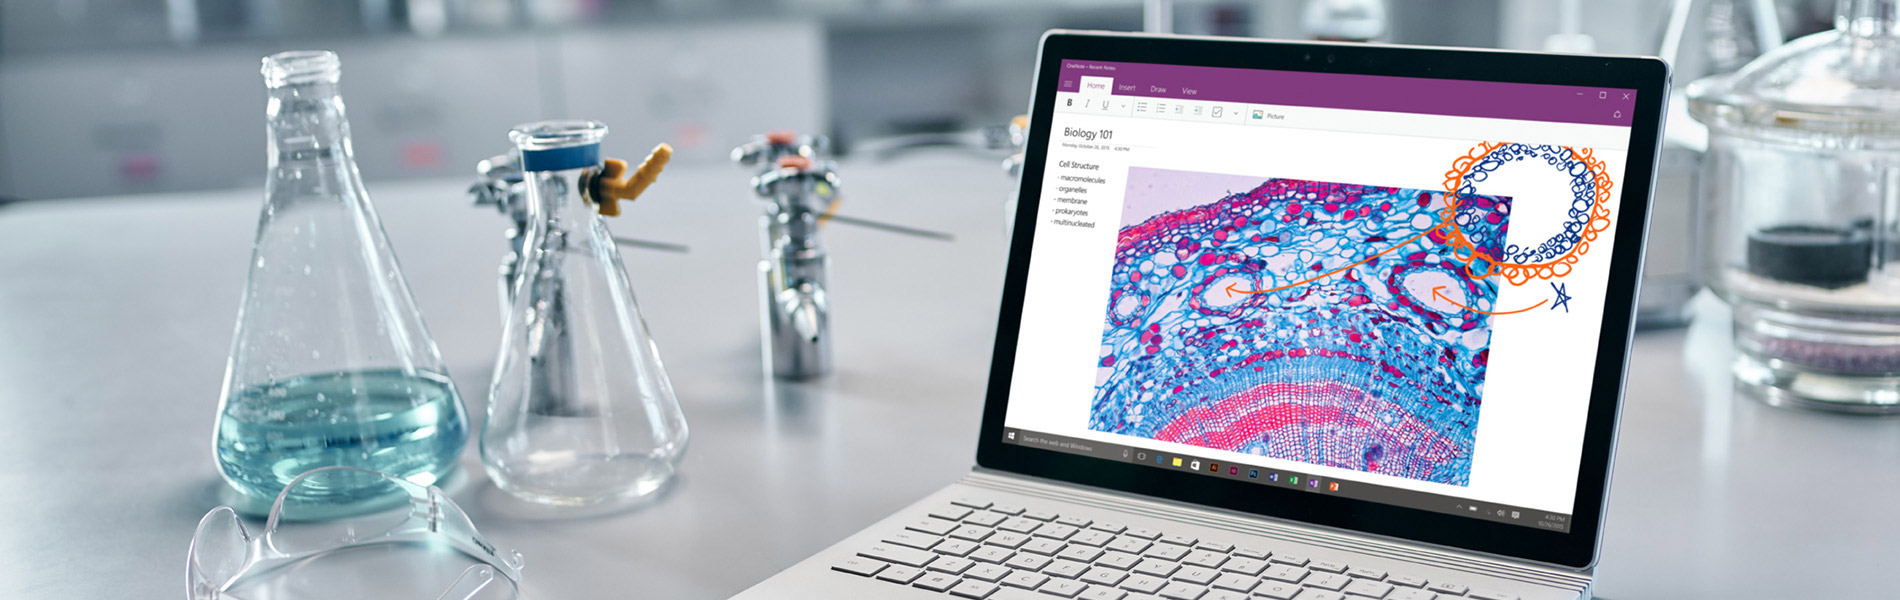 A laptop on a science desk showing biology cells with chemistry vials at the side.